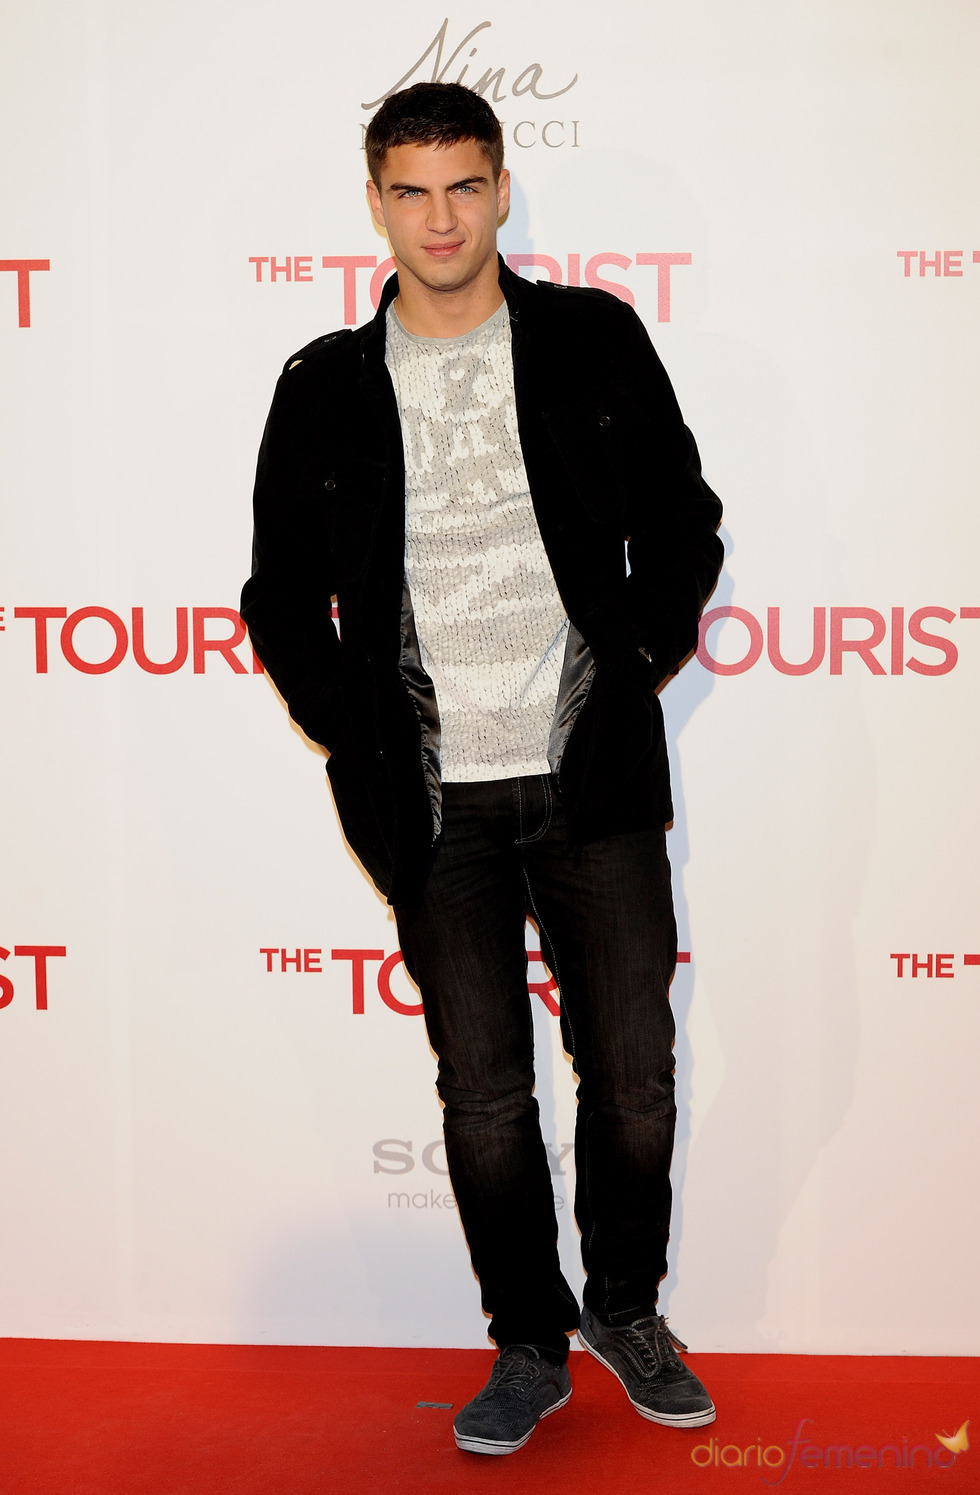 Maxi Iglesias en la premiere de 'The Tourist' en Madrid